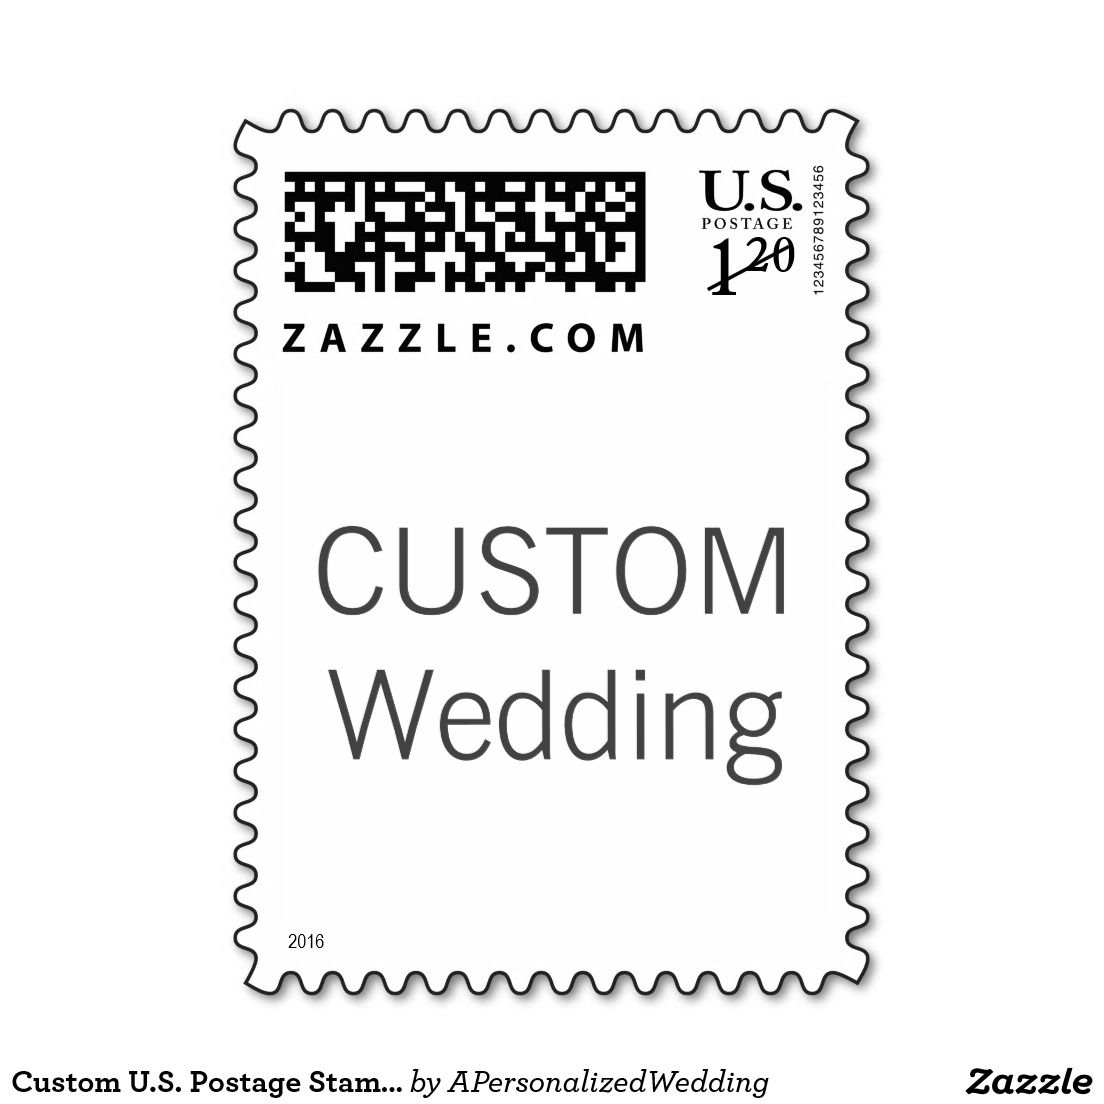 Custom U.S. Postage Stamp 1st Class Large Env. 2oz | Favors and Wedding